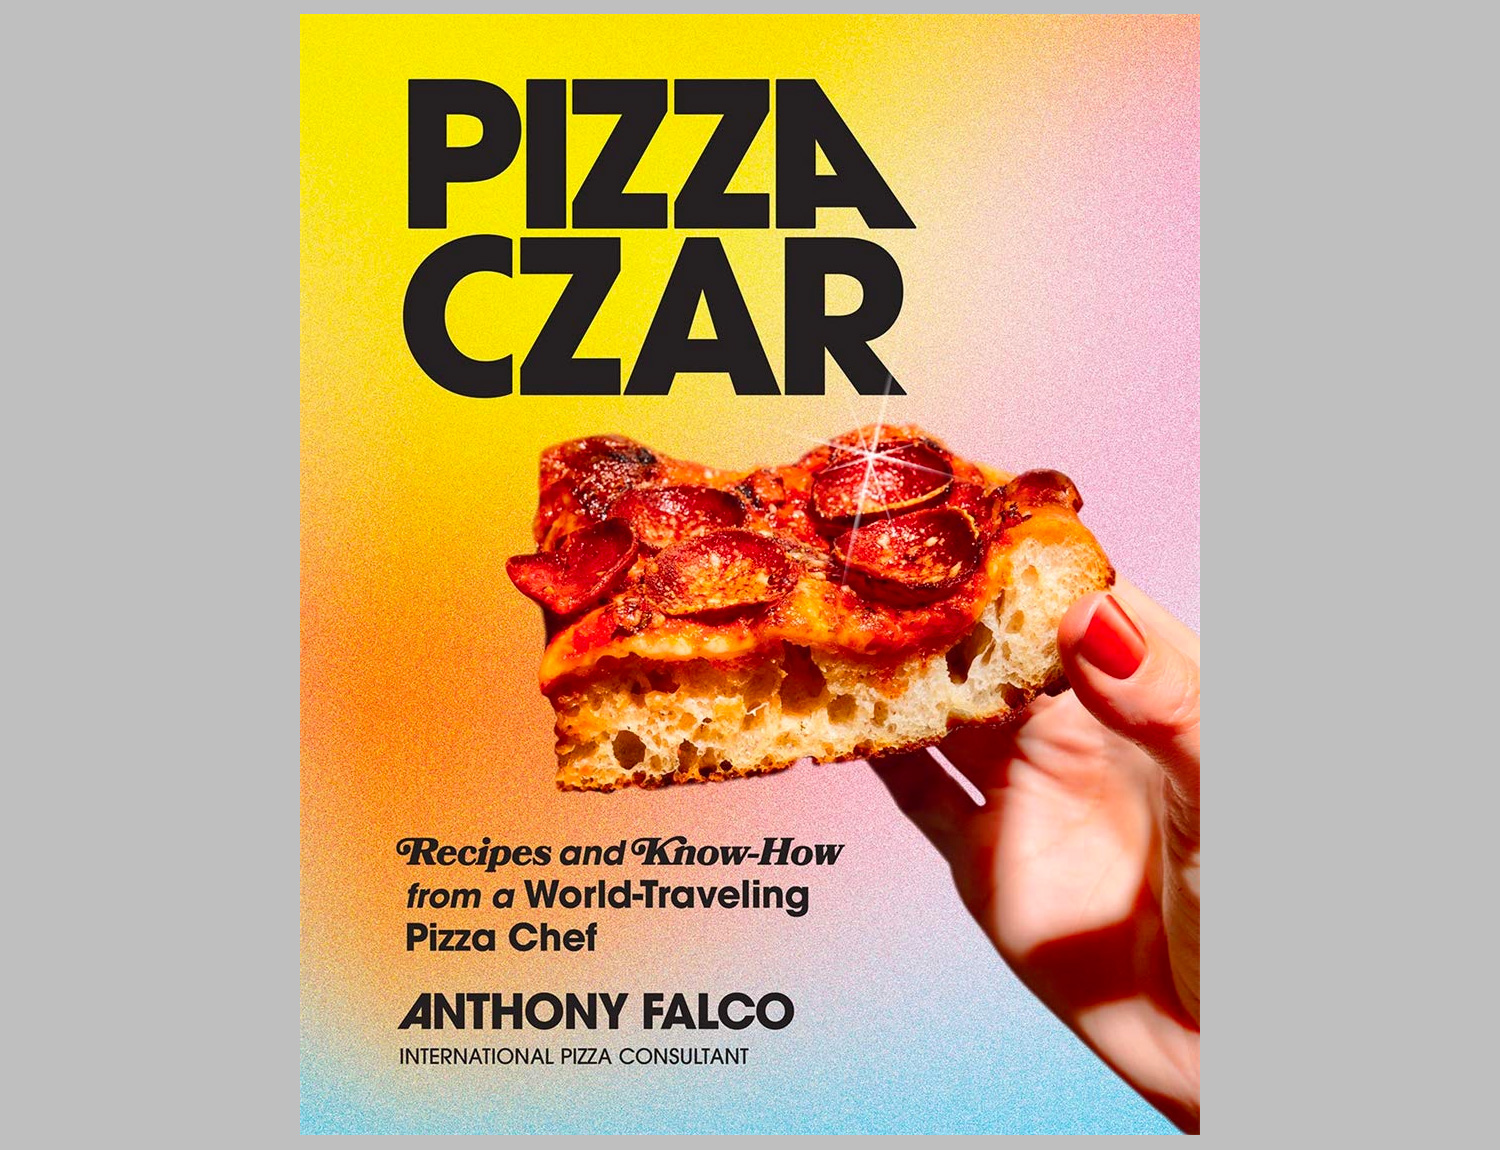 Pizza Czar: Recipes and Know-How from a World-Traveling Pizza Chef at werd.com